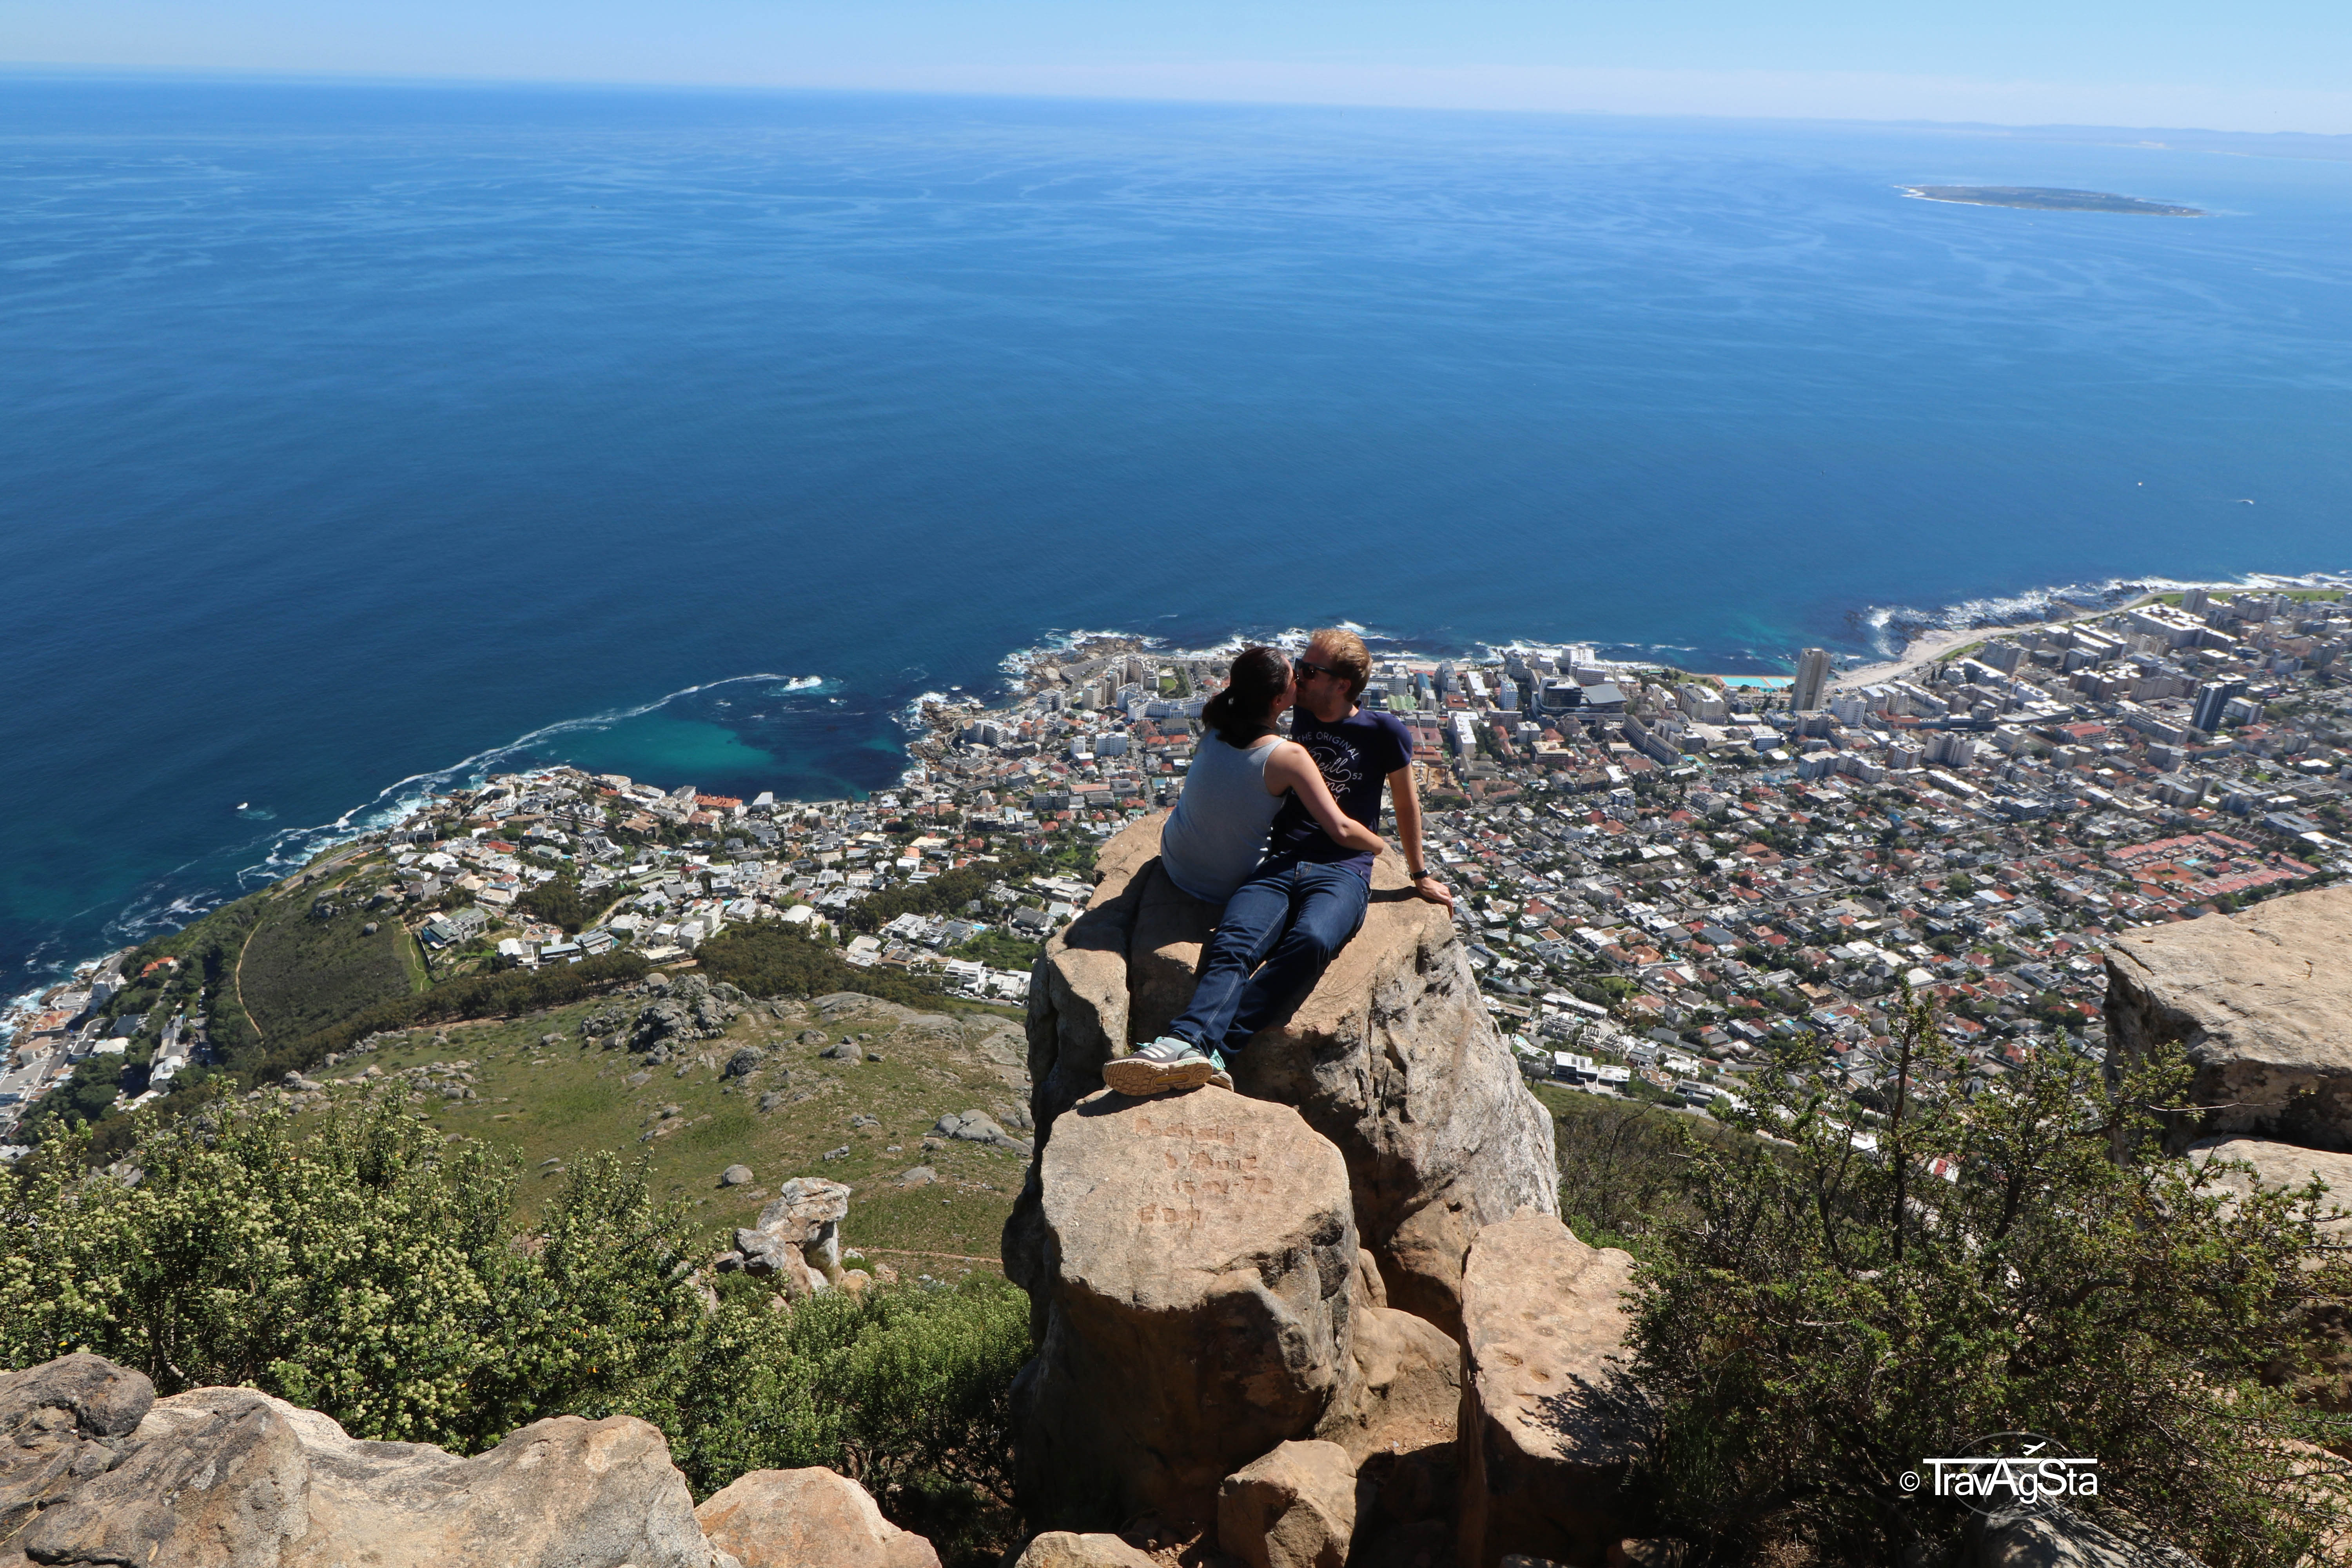 Our 11 highlights in South Africa